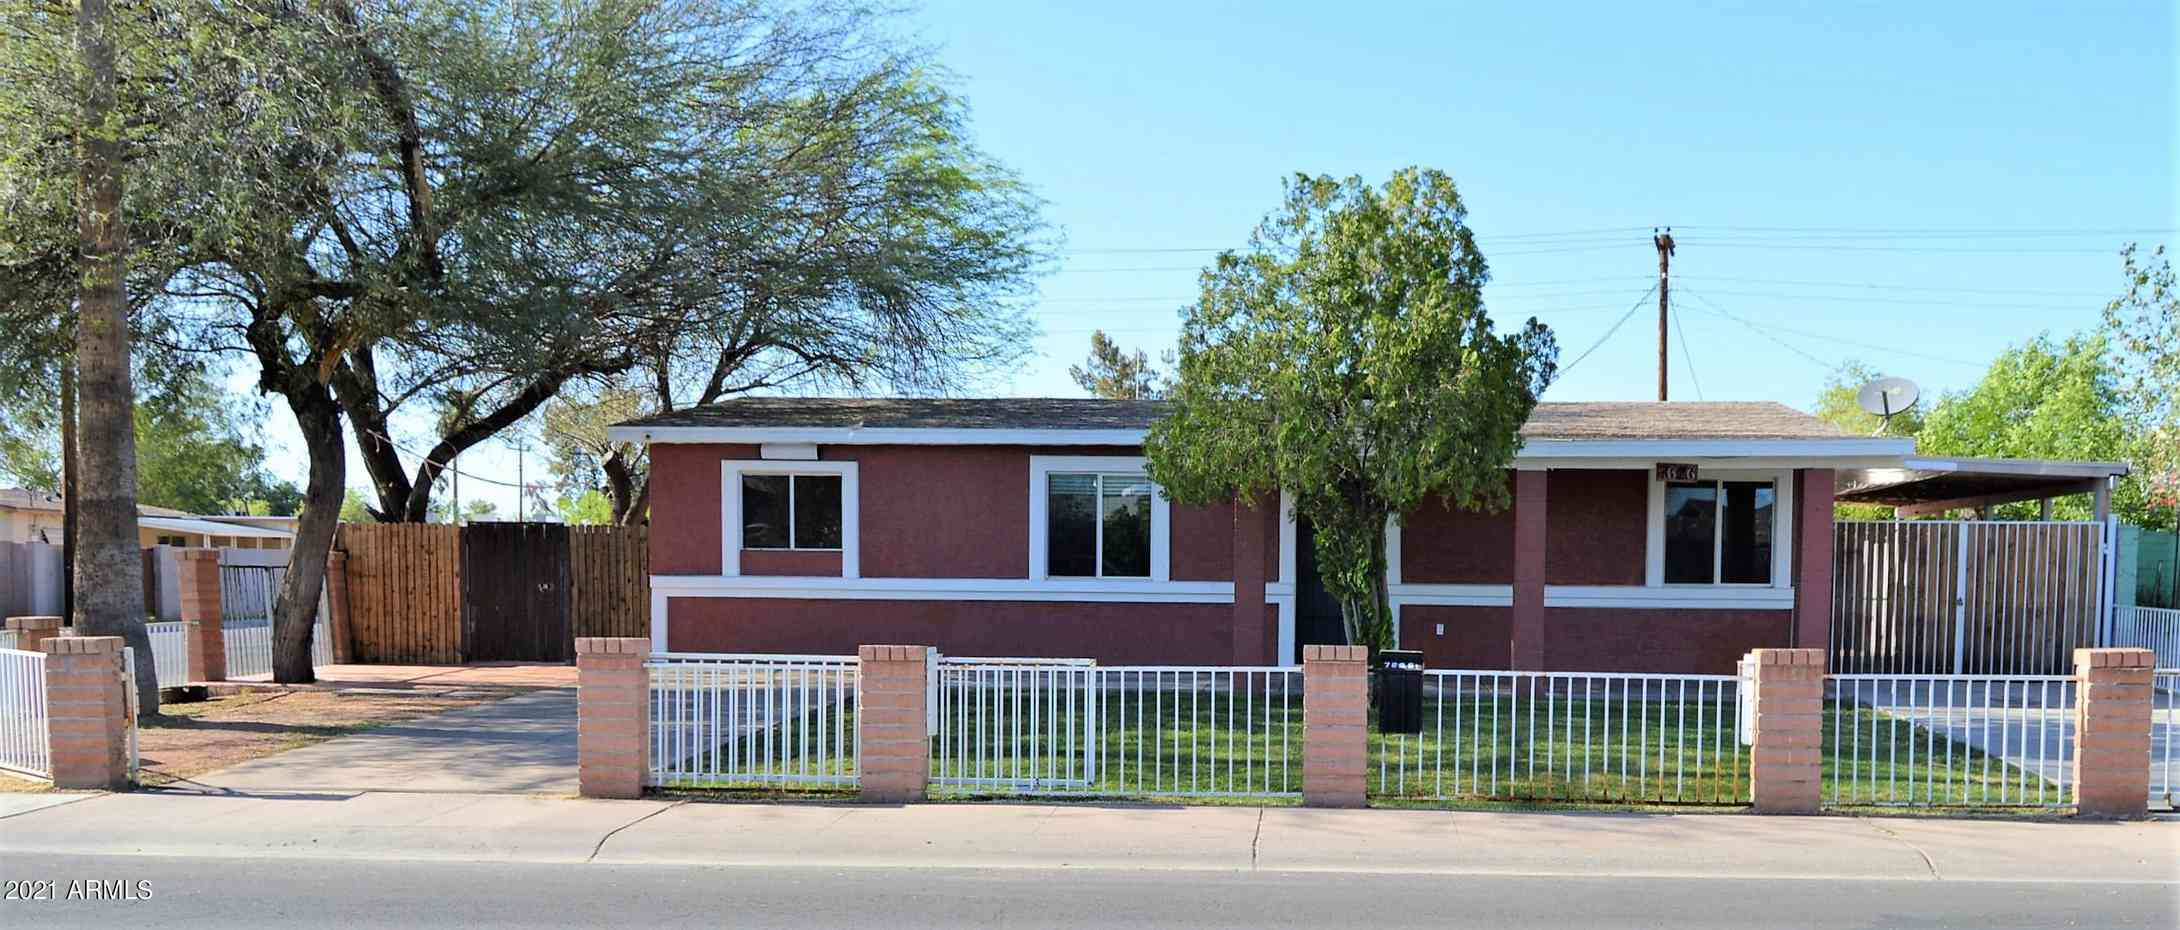 7626 W WHITTON Avenue, Phoenix, AZ, 85033,